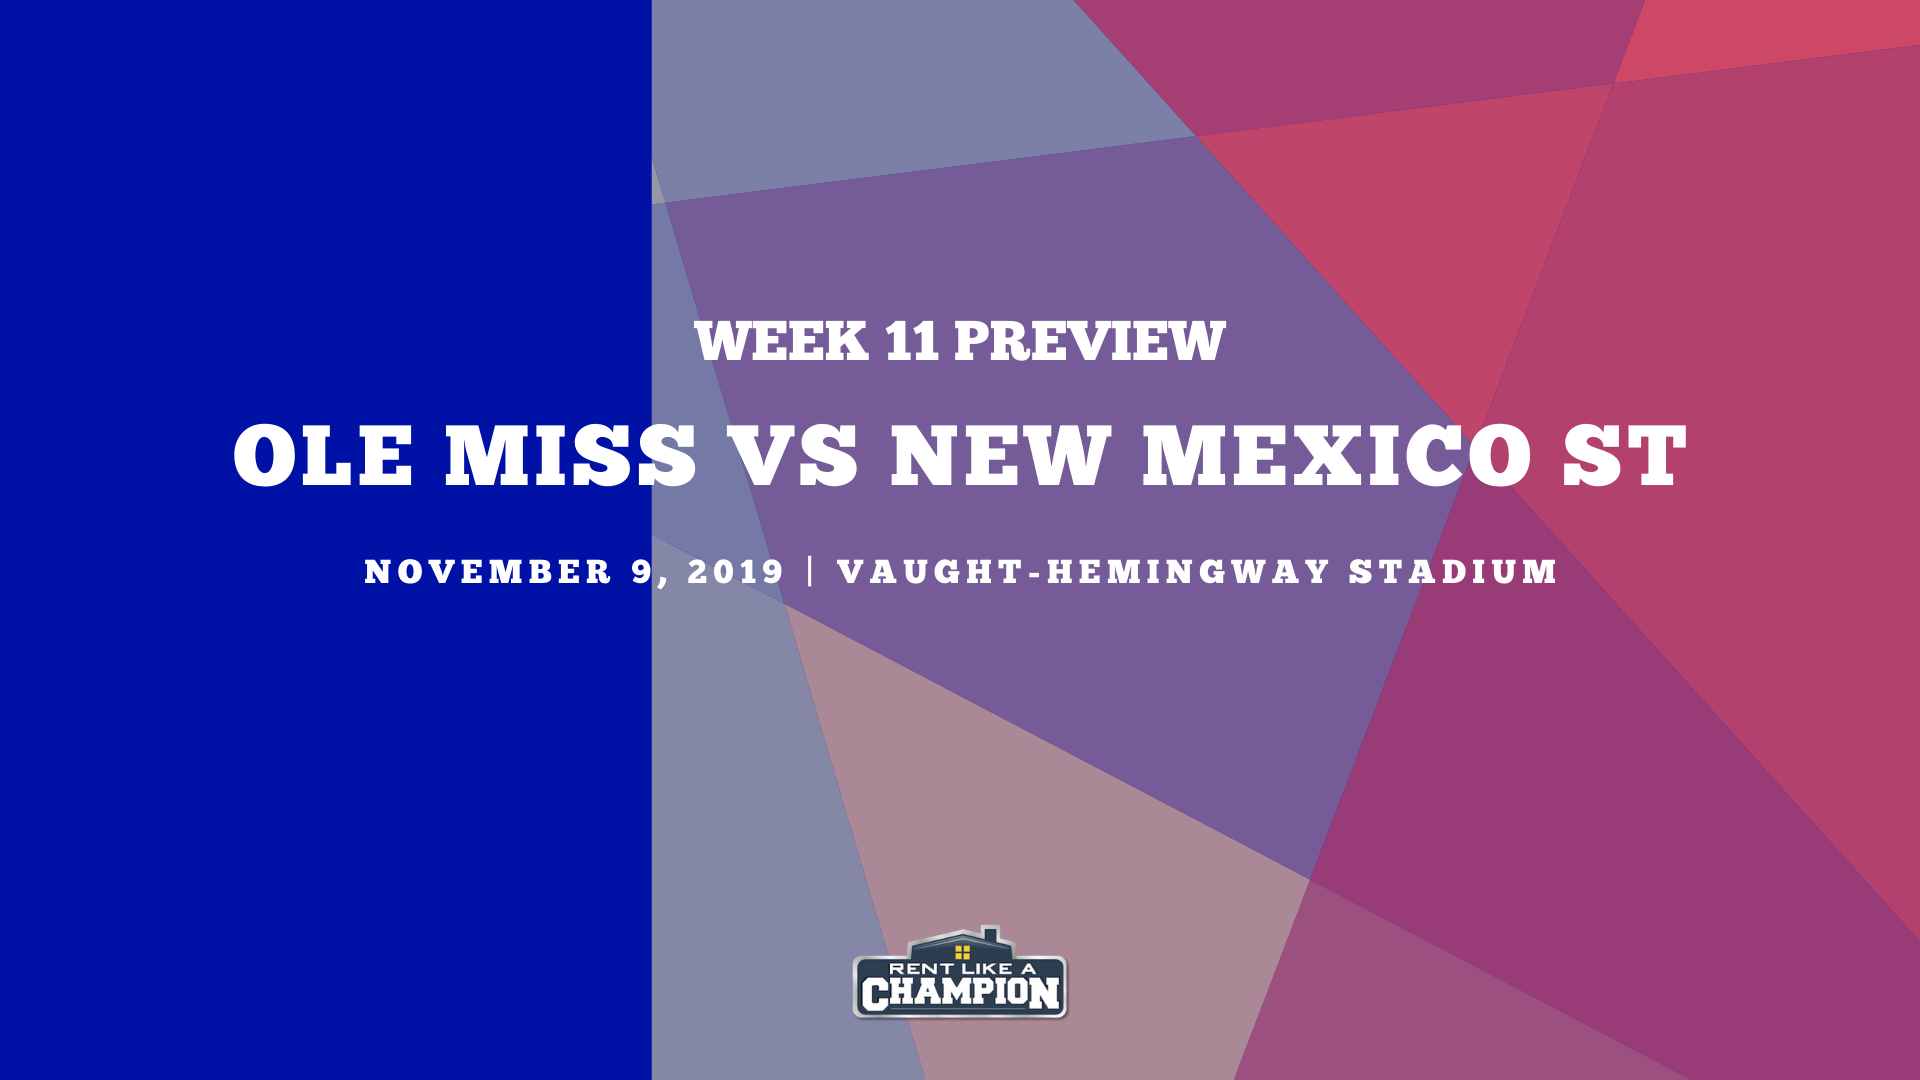 Ole Miss vs. New Mexico State: Preview, keys to the game, and predictions